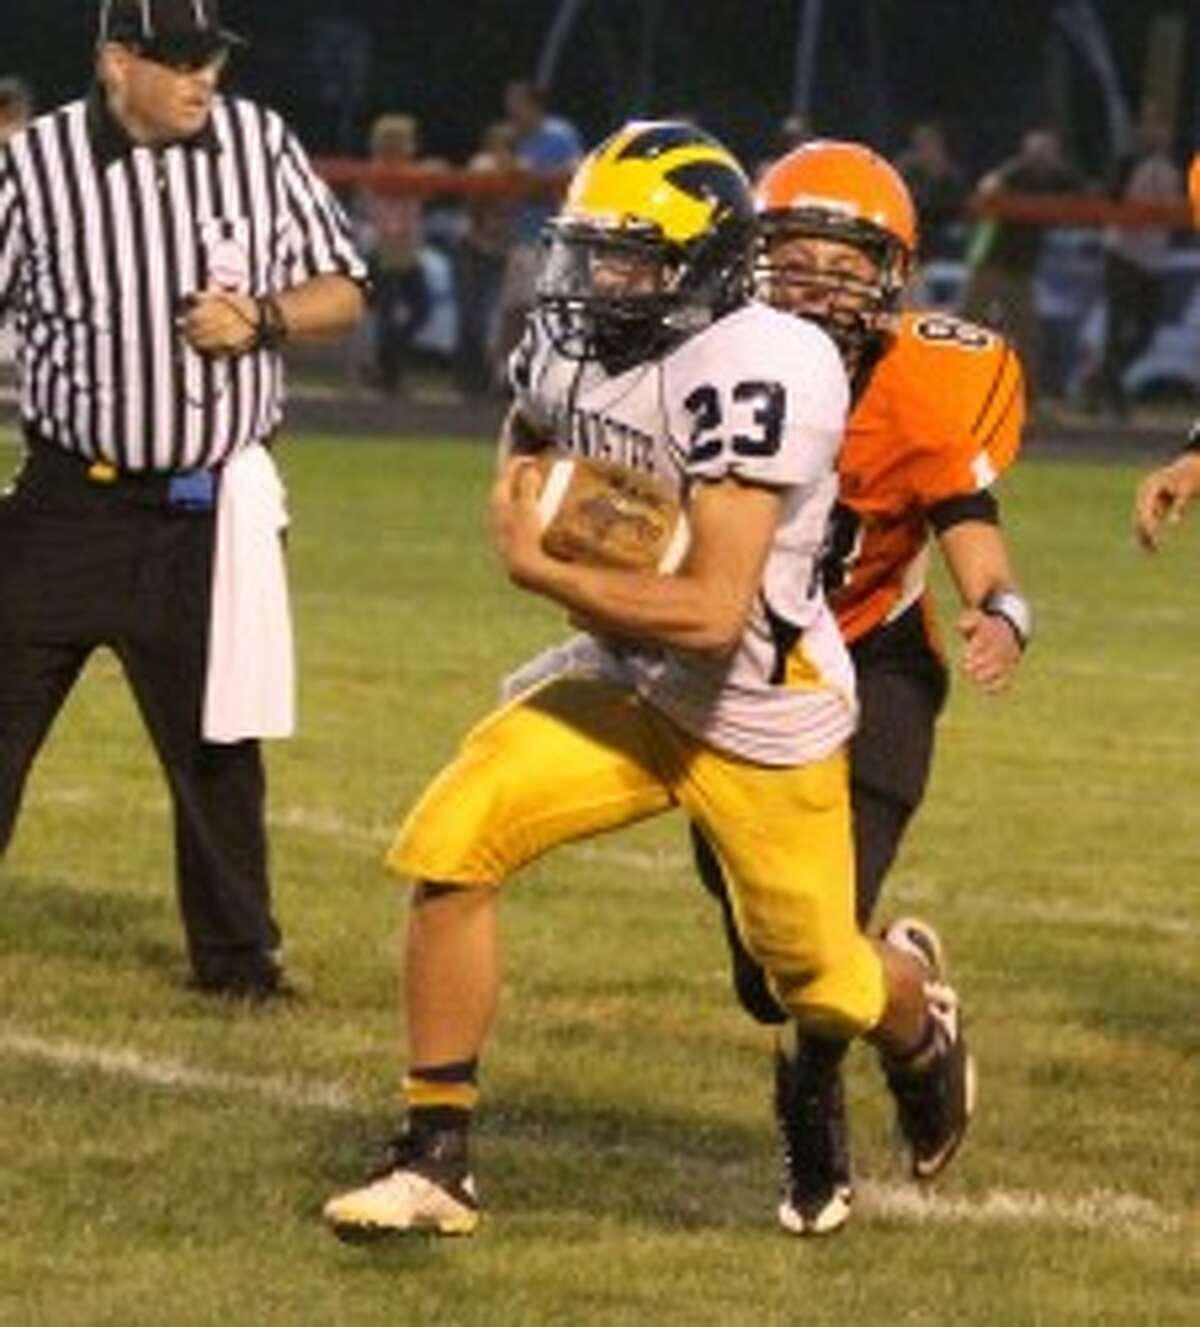 Manistee senior Nick Williams (23) picks up yards in the second half against the Orioles. (Matt Wenzel/News Advocate)